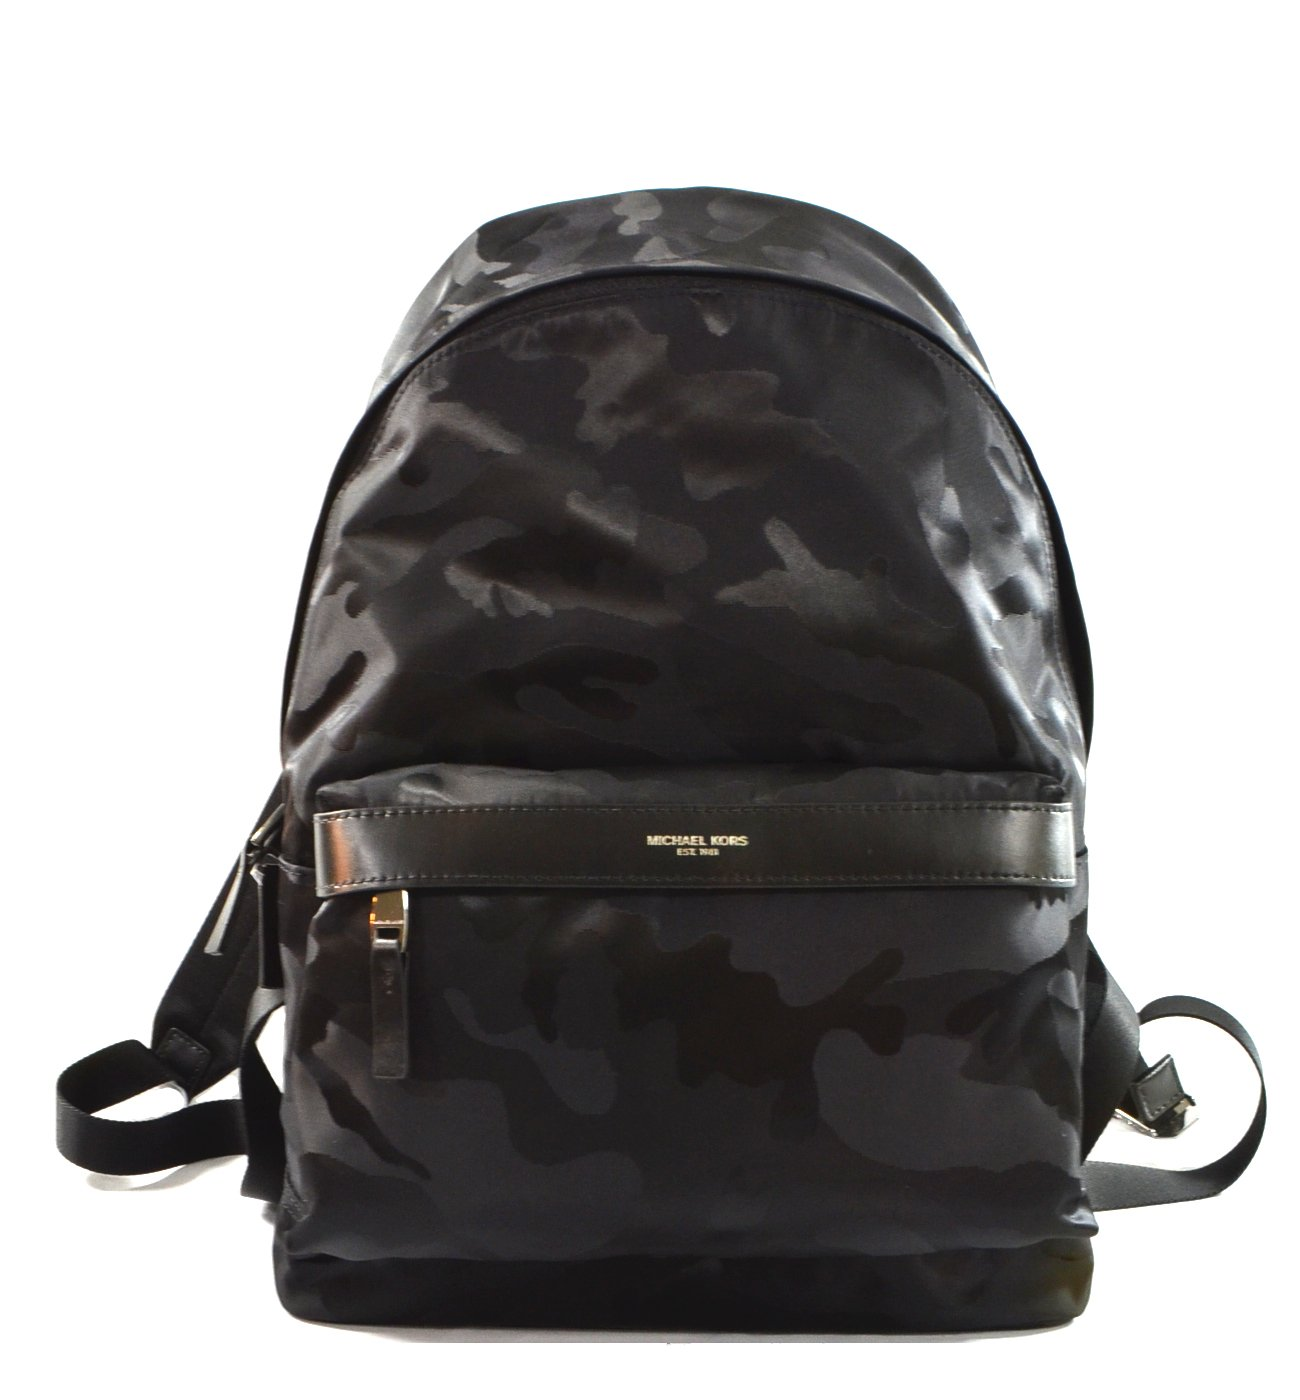 Michael Kors Kent Nylon Backpack For Work School Office Travel (Camouflage Black) by Michael Kors